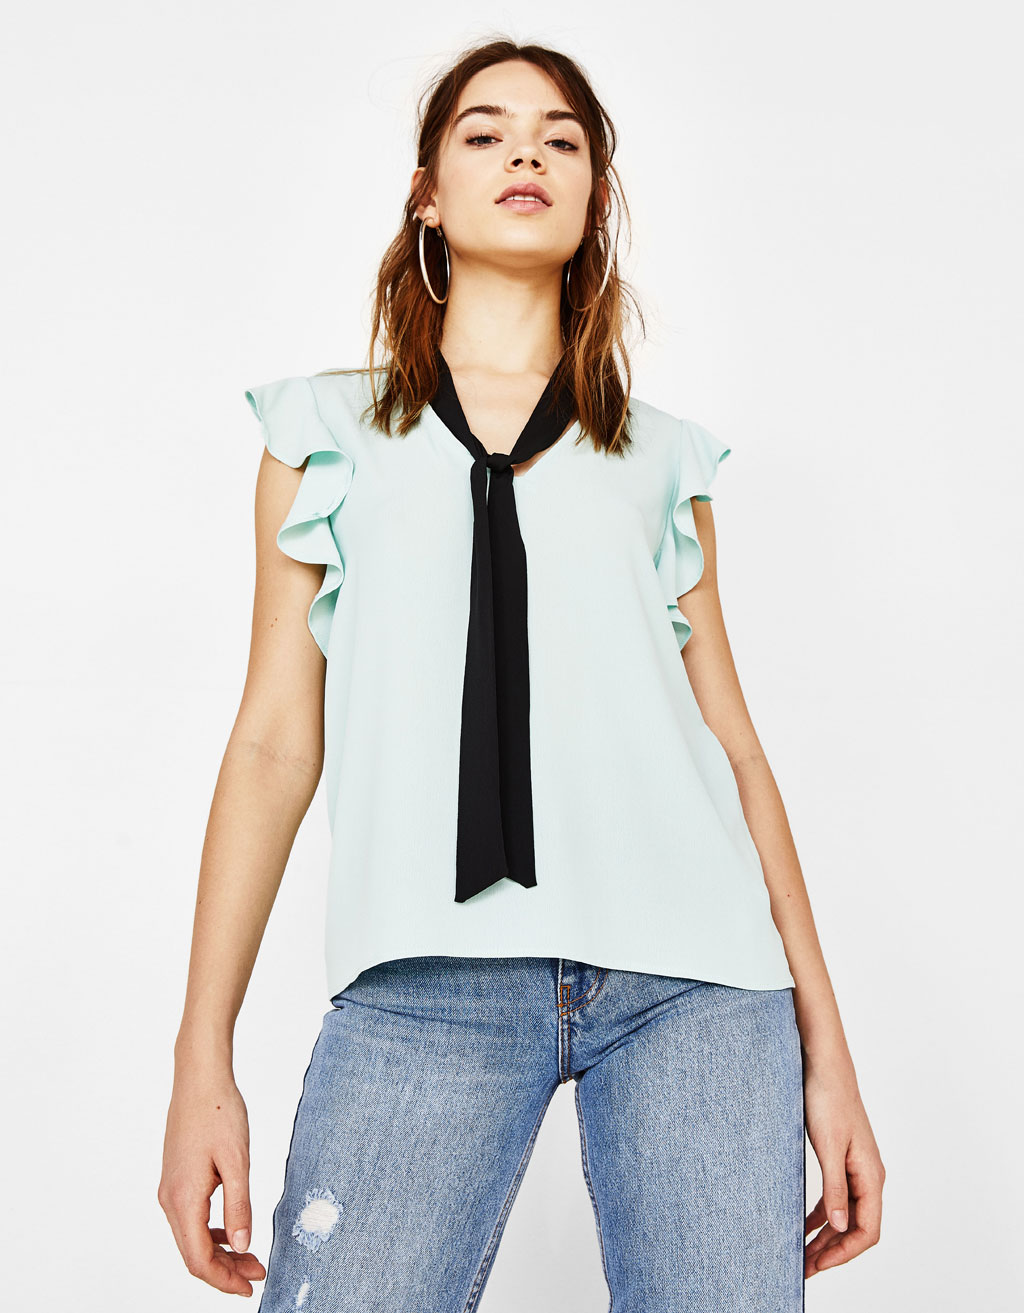 Ruffled shirt with a bow